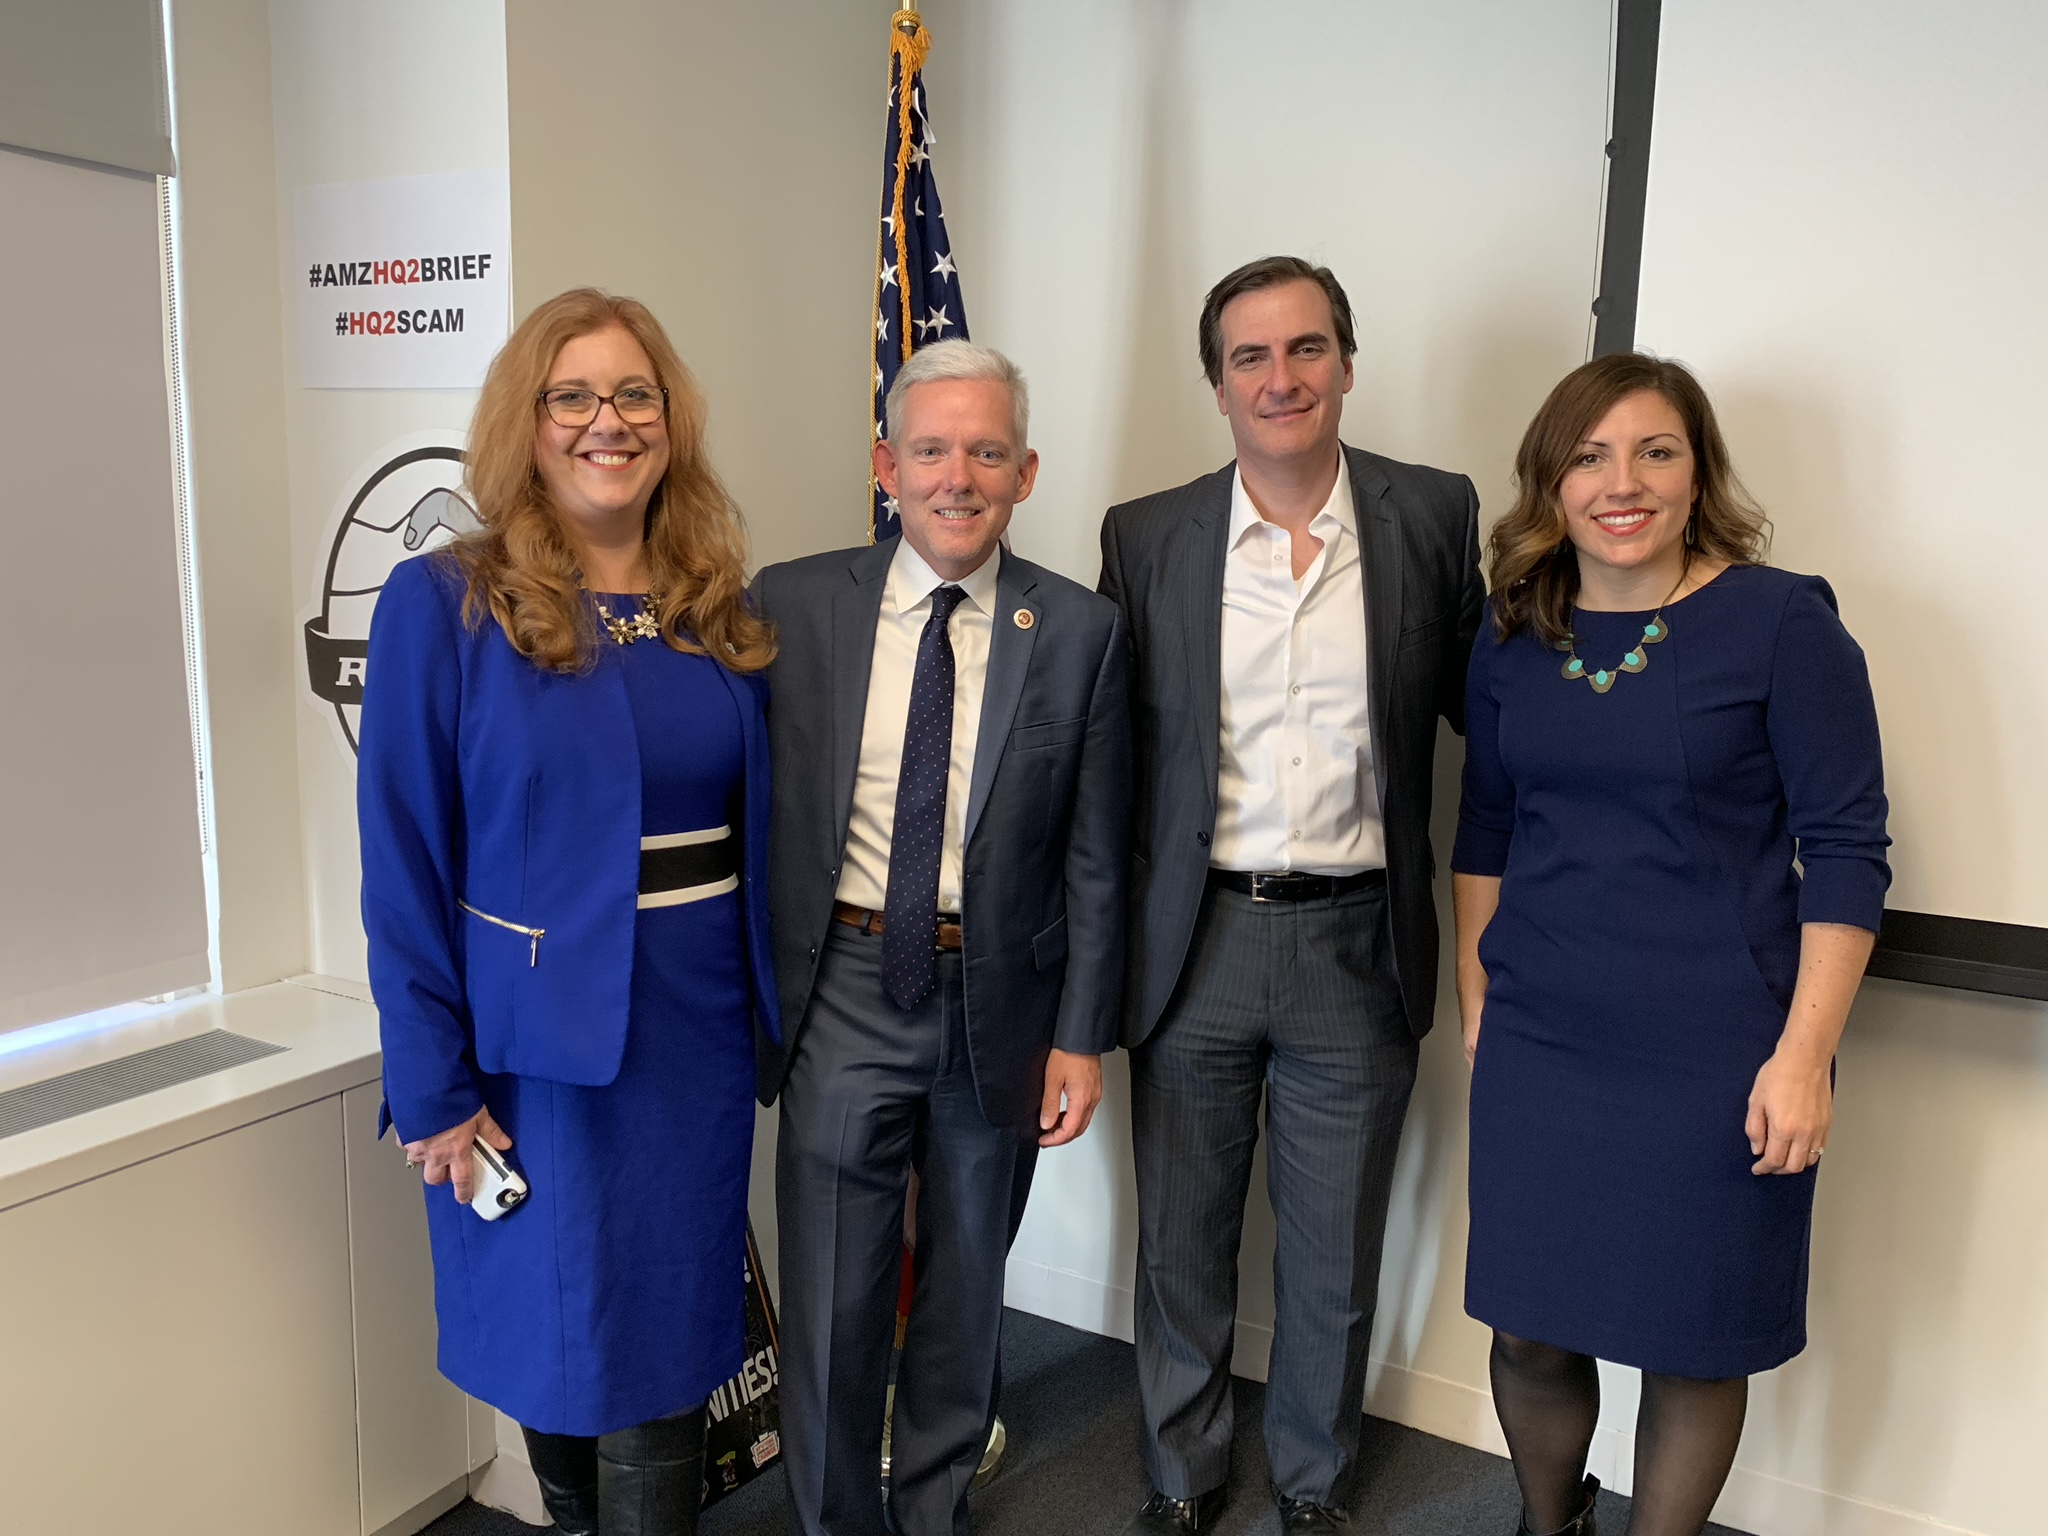 Seattle Council Member Lisa Herbold (left), New York City Council Member Jimmy Van Bramer (second from left), New York State Sen. Michael Gianaris (second from right) and Seattle Council Member Teresa Mosqueda met at the Retail, Wholesale, and Distribution Workers Union (RWDSU) headquarters. Photo courtesy of Gianaris' Office